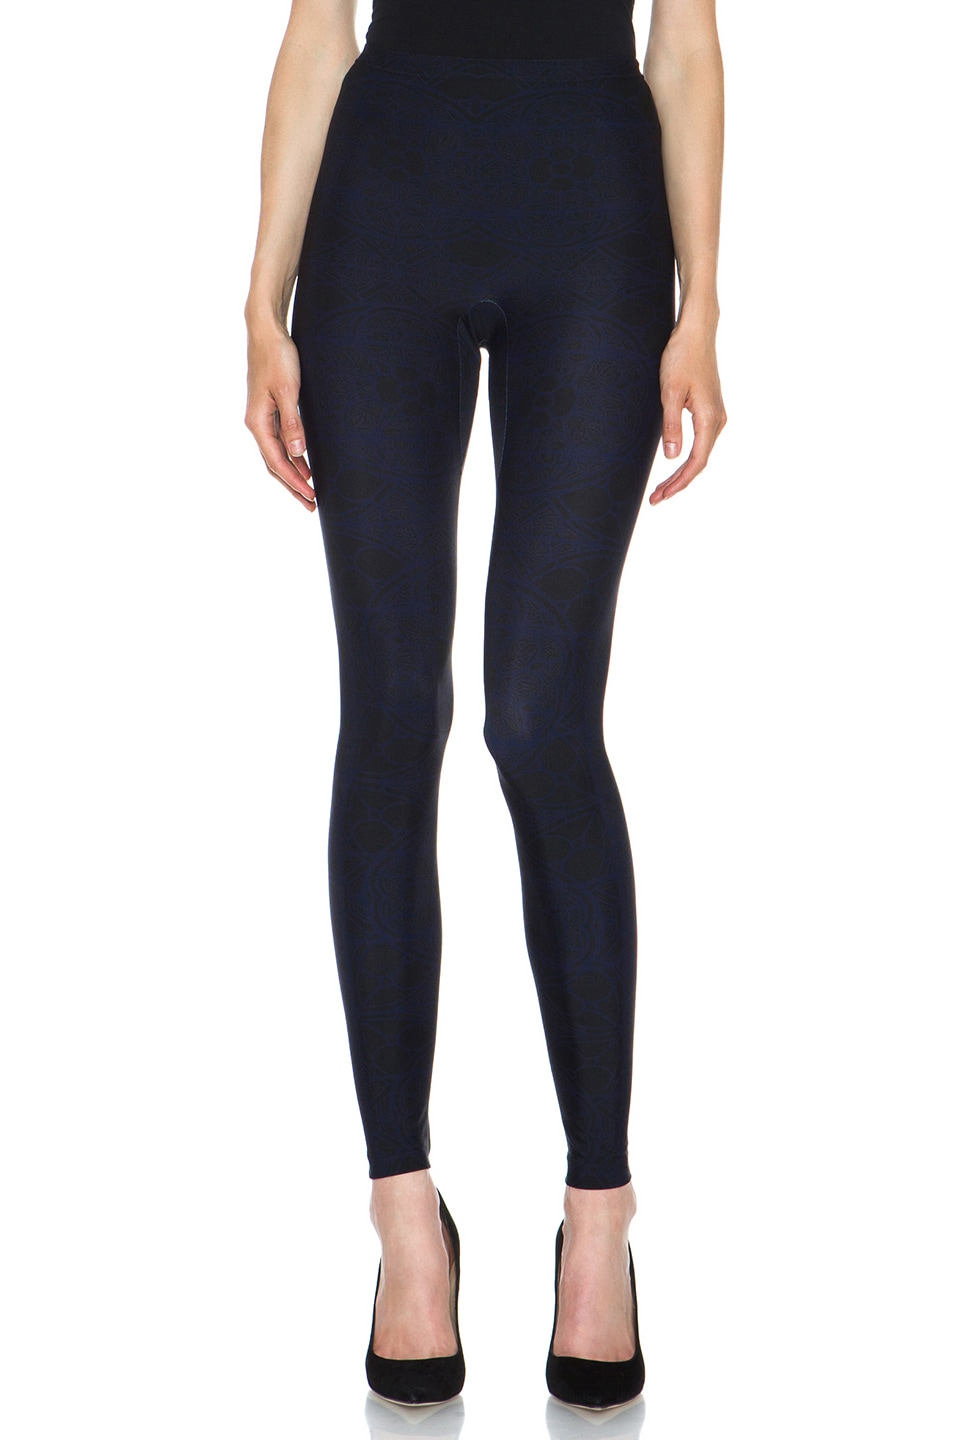 Image 1 of Alexander McQueen Stained Glass Print Nylon-Blend Legging in Navy & Black